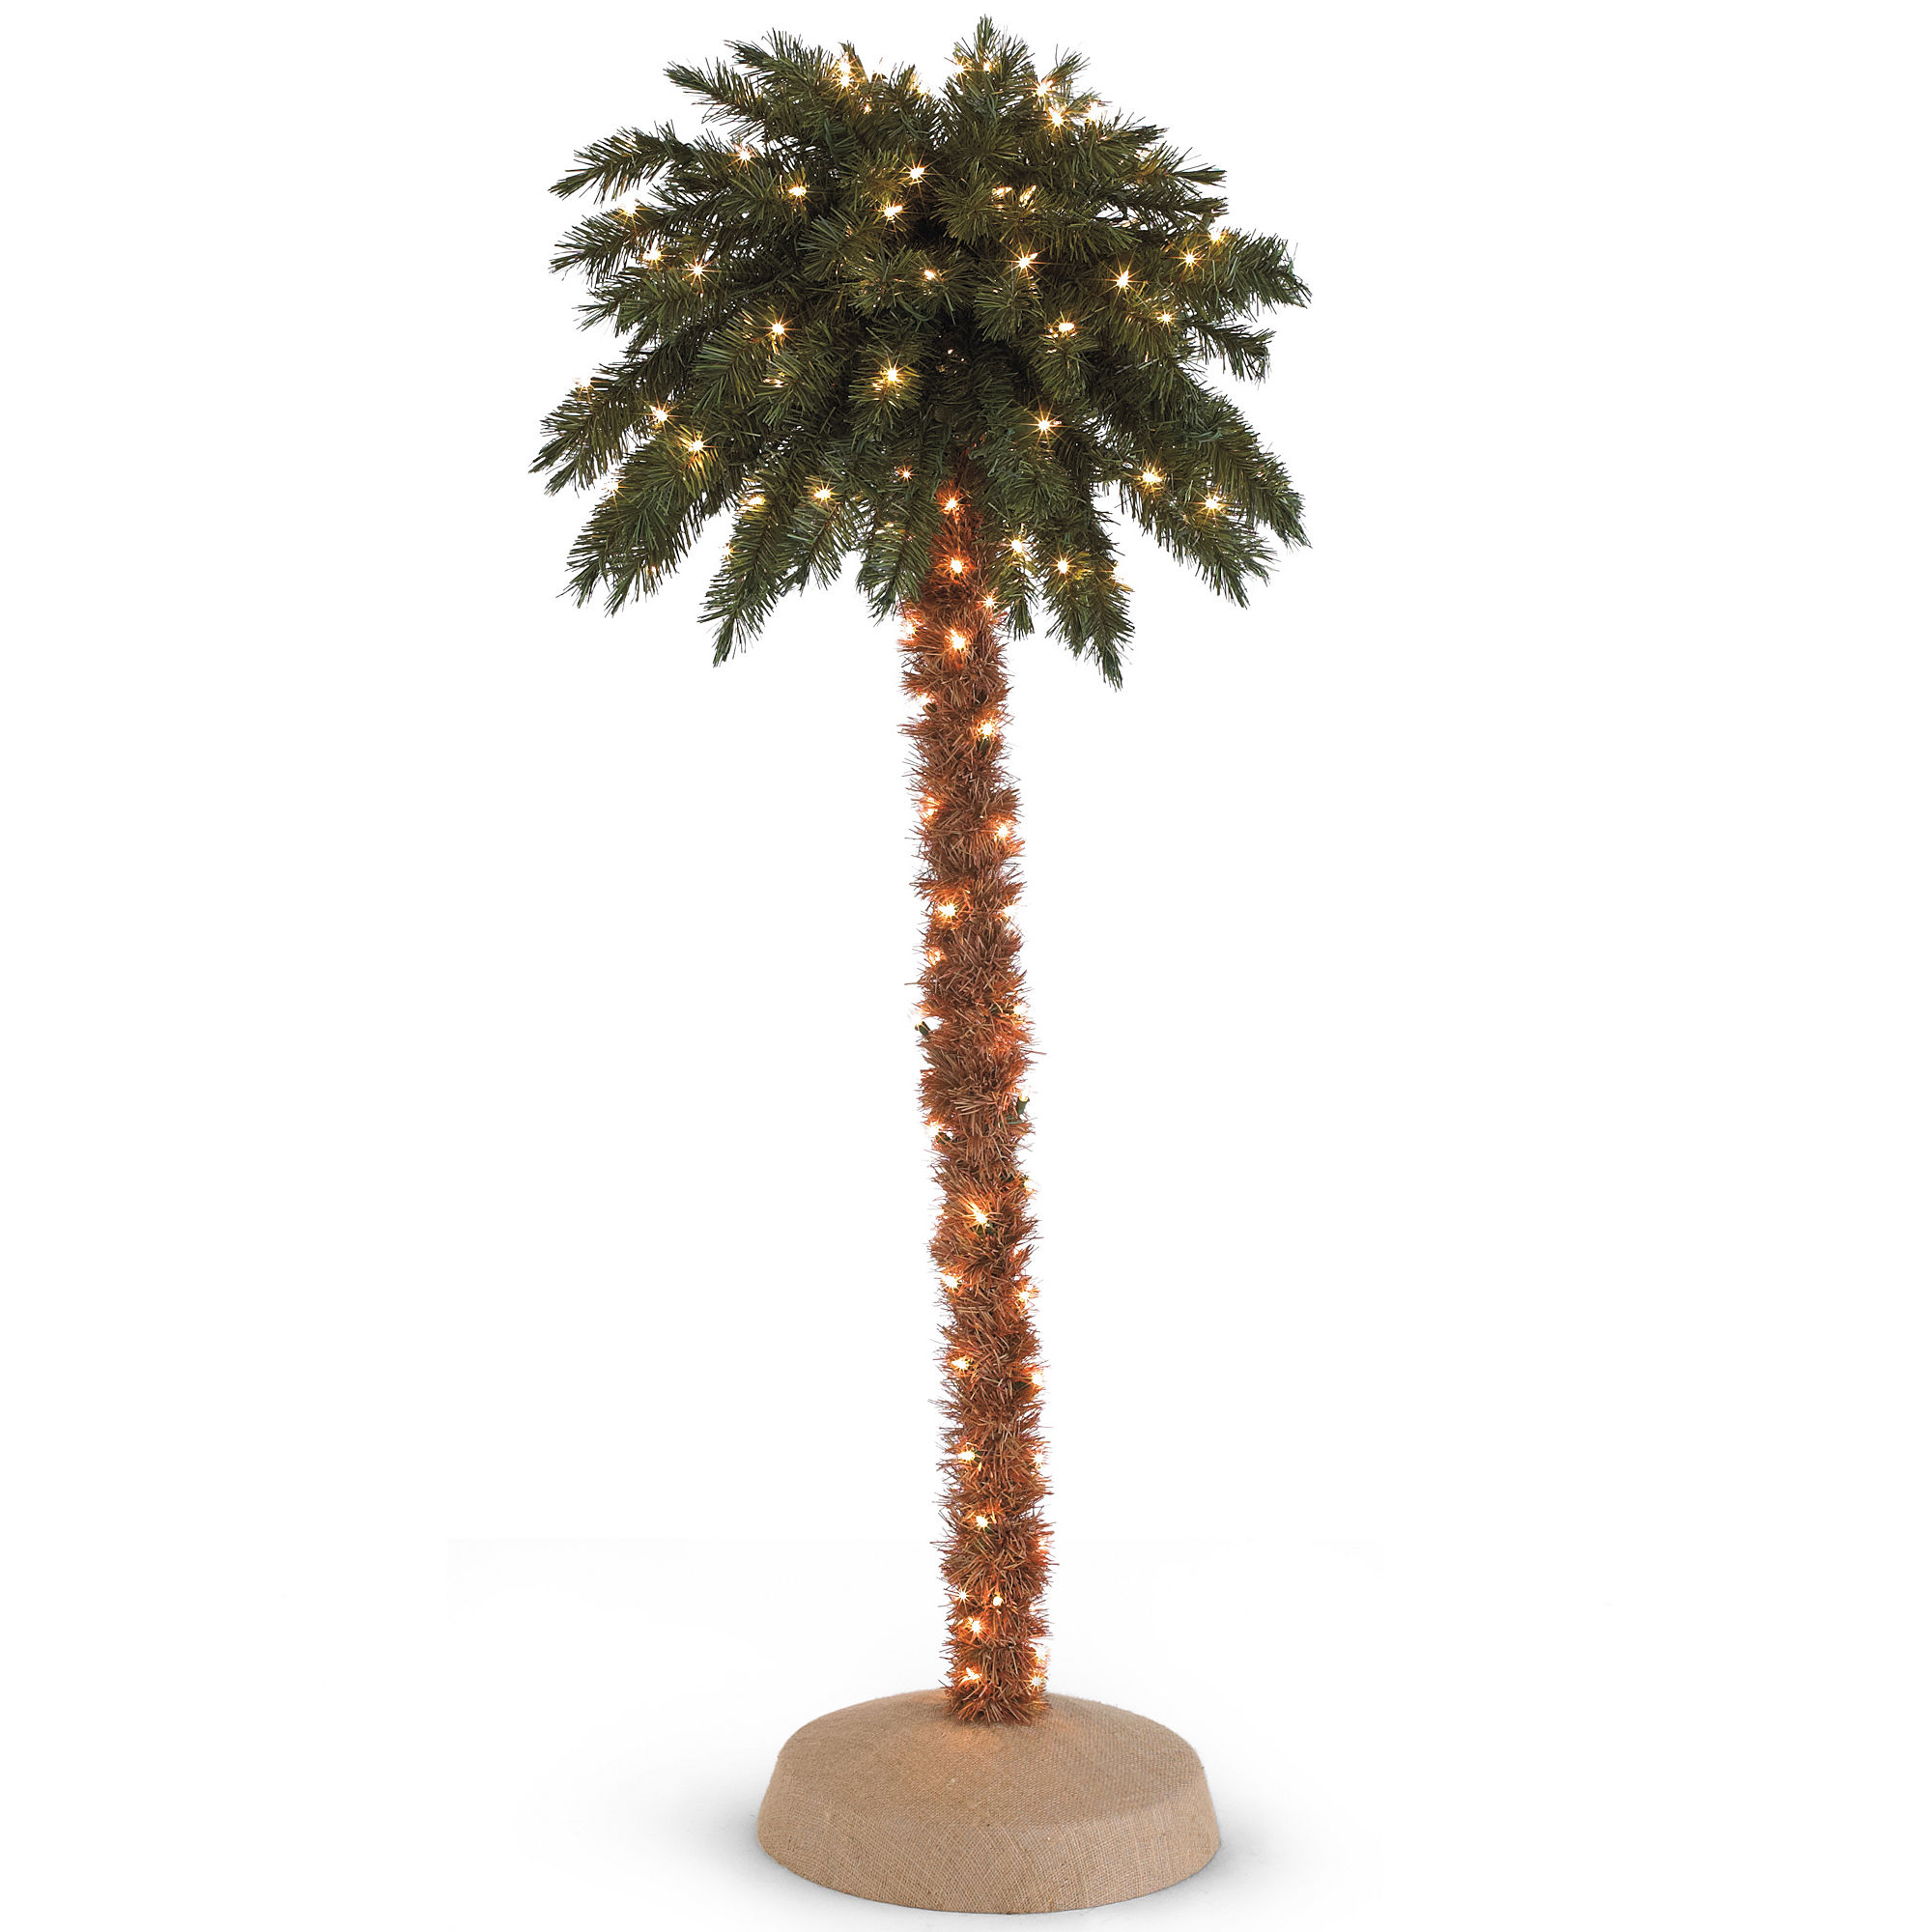 Where To Buy A Nice Artificial Christmas Tree: Buy Christmas Palm Tree Online